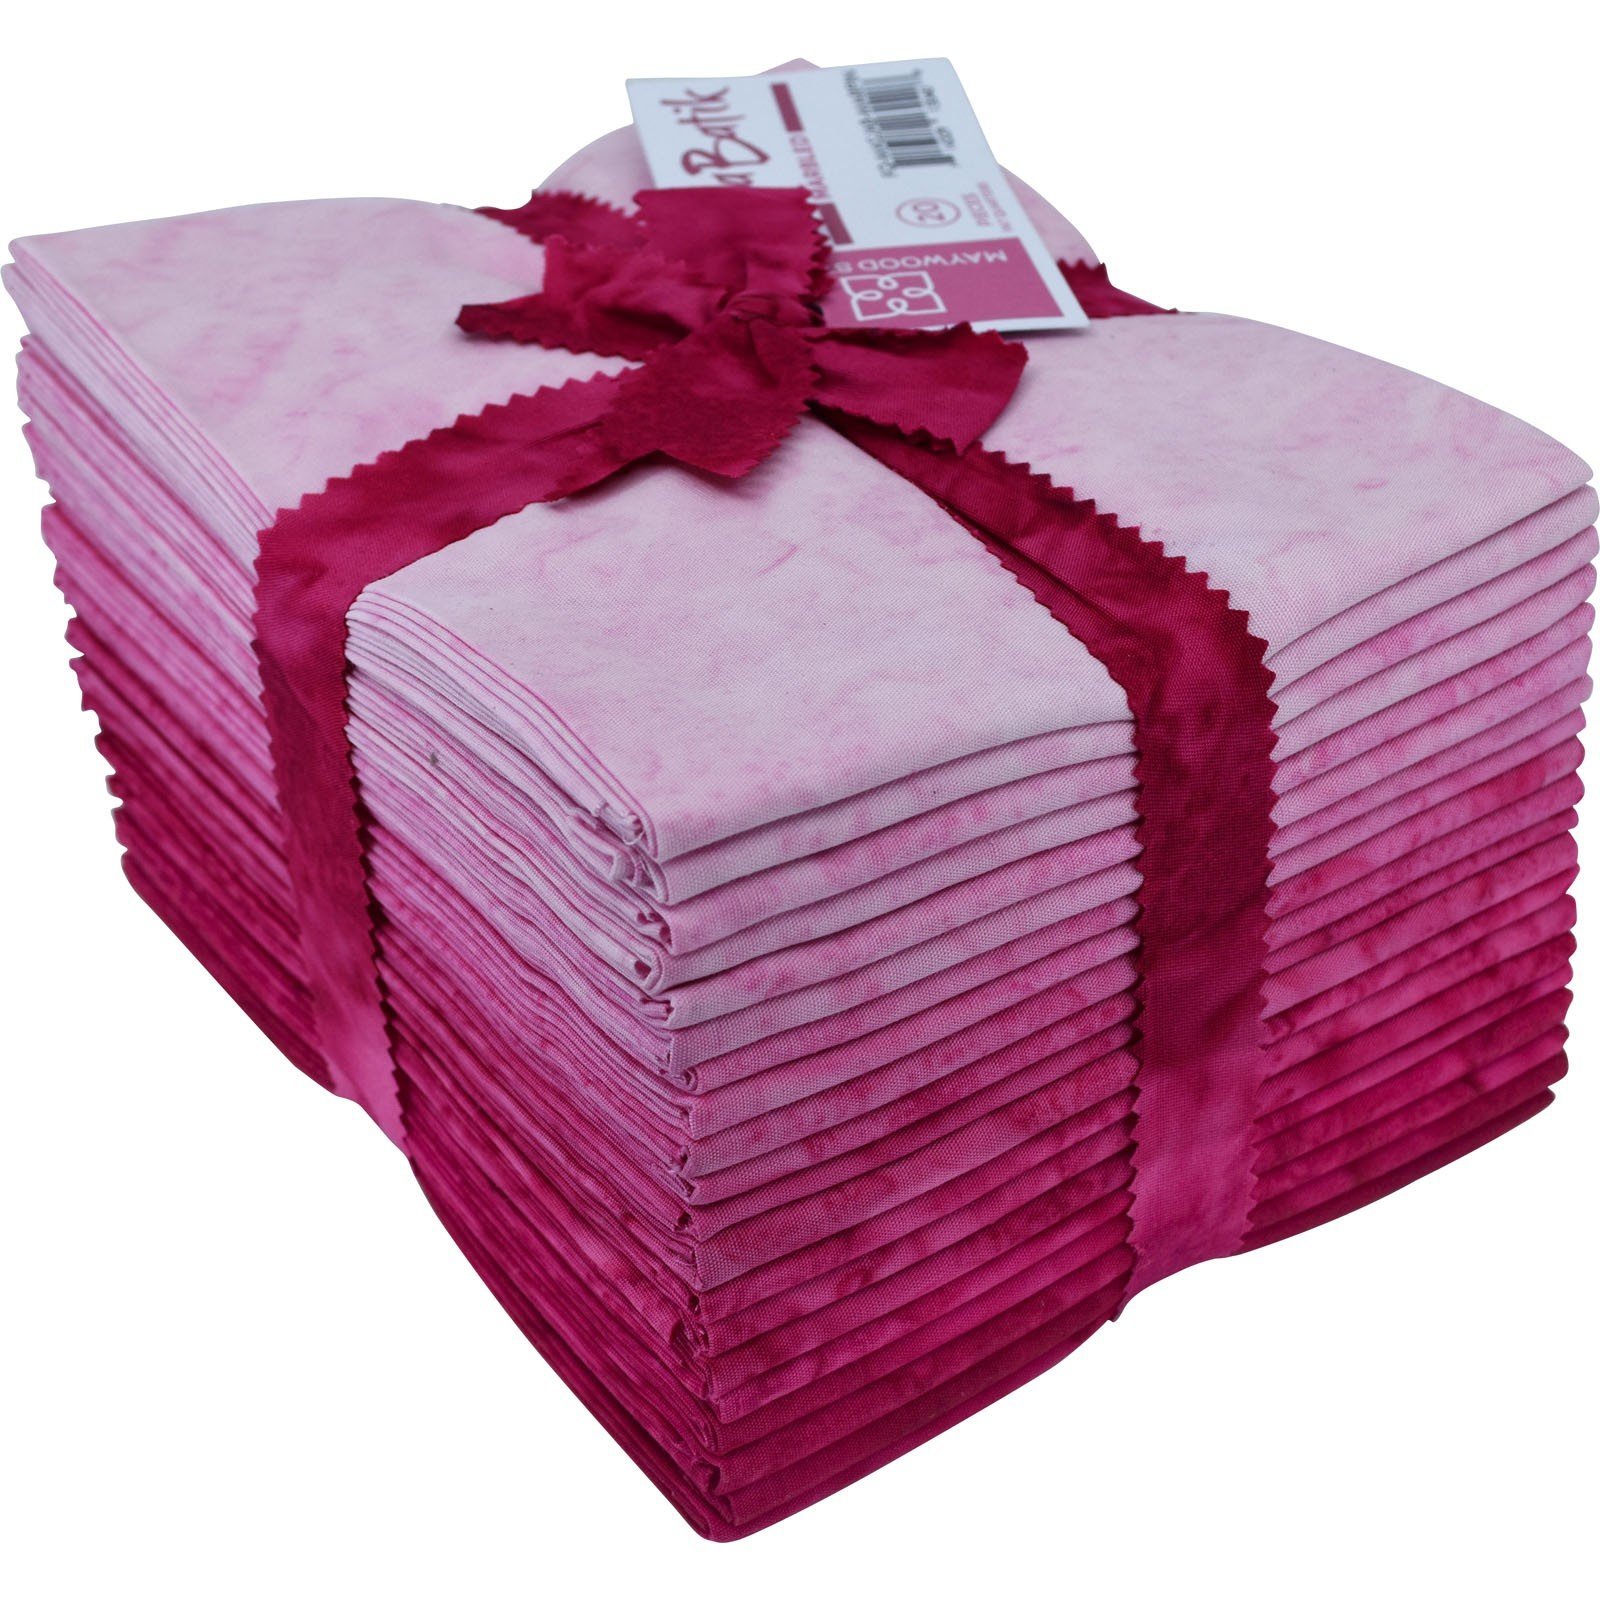 Maywood Java Batiks PINK MARBLE Bundles Fat Quarters (20)